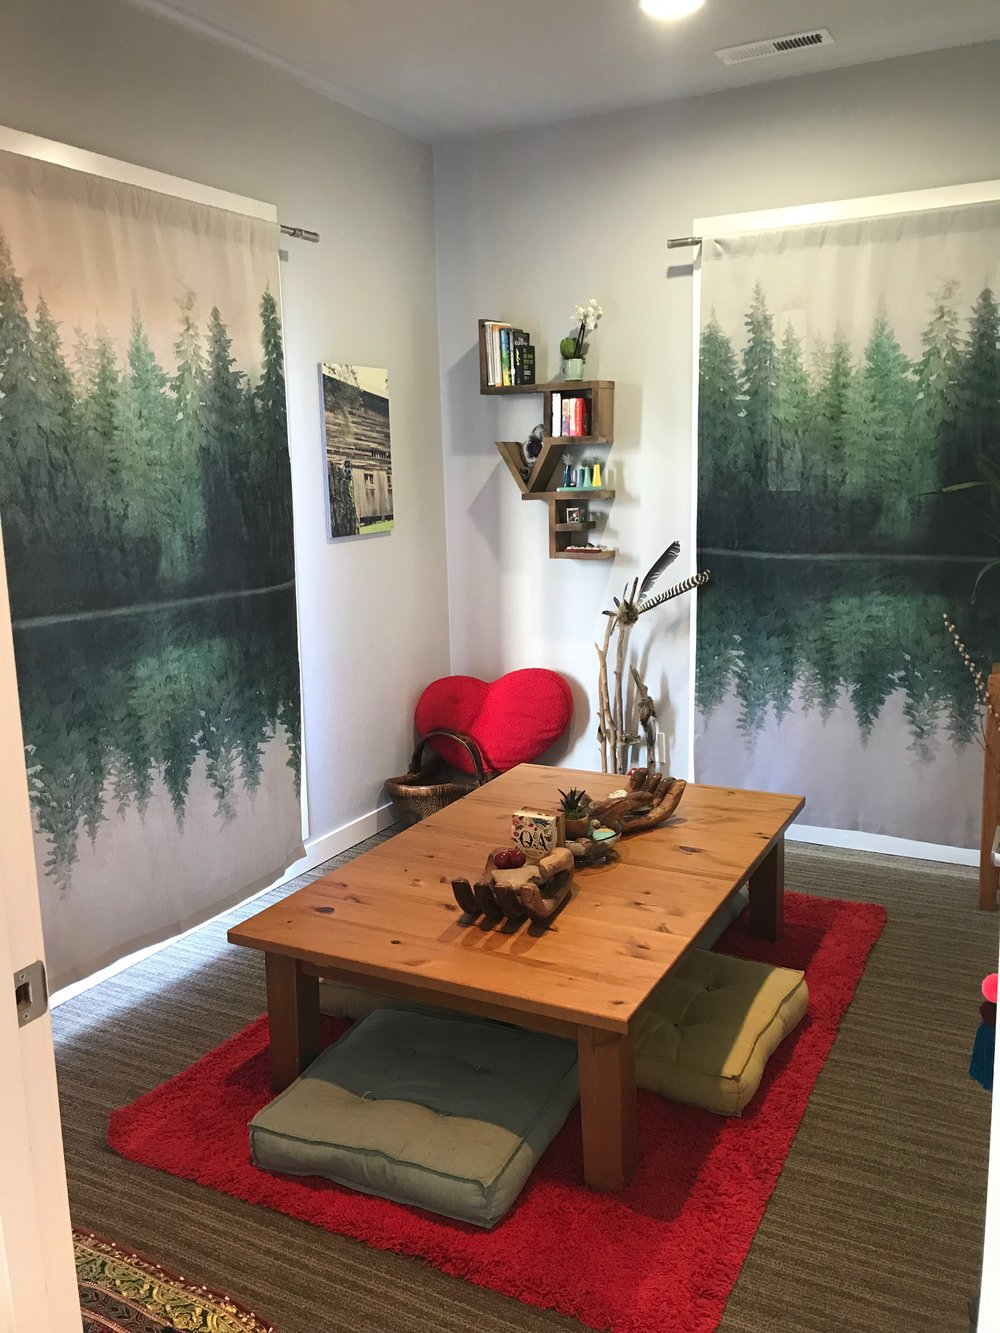 The wood-themed room is for inspired connection. There are many question tools in the space to create new conversation with someone you love. Or maybe you want to have more meaningful conversation with someone. Make yourself a cup of tea at the self-serve tea station and enjoy curious connection.